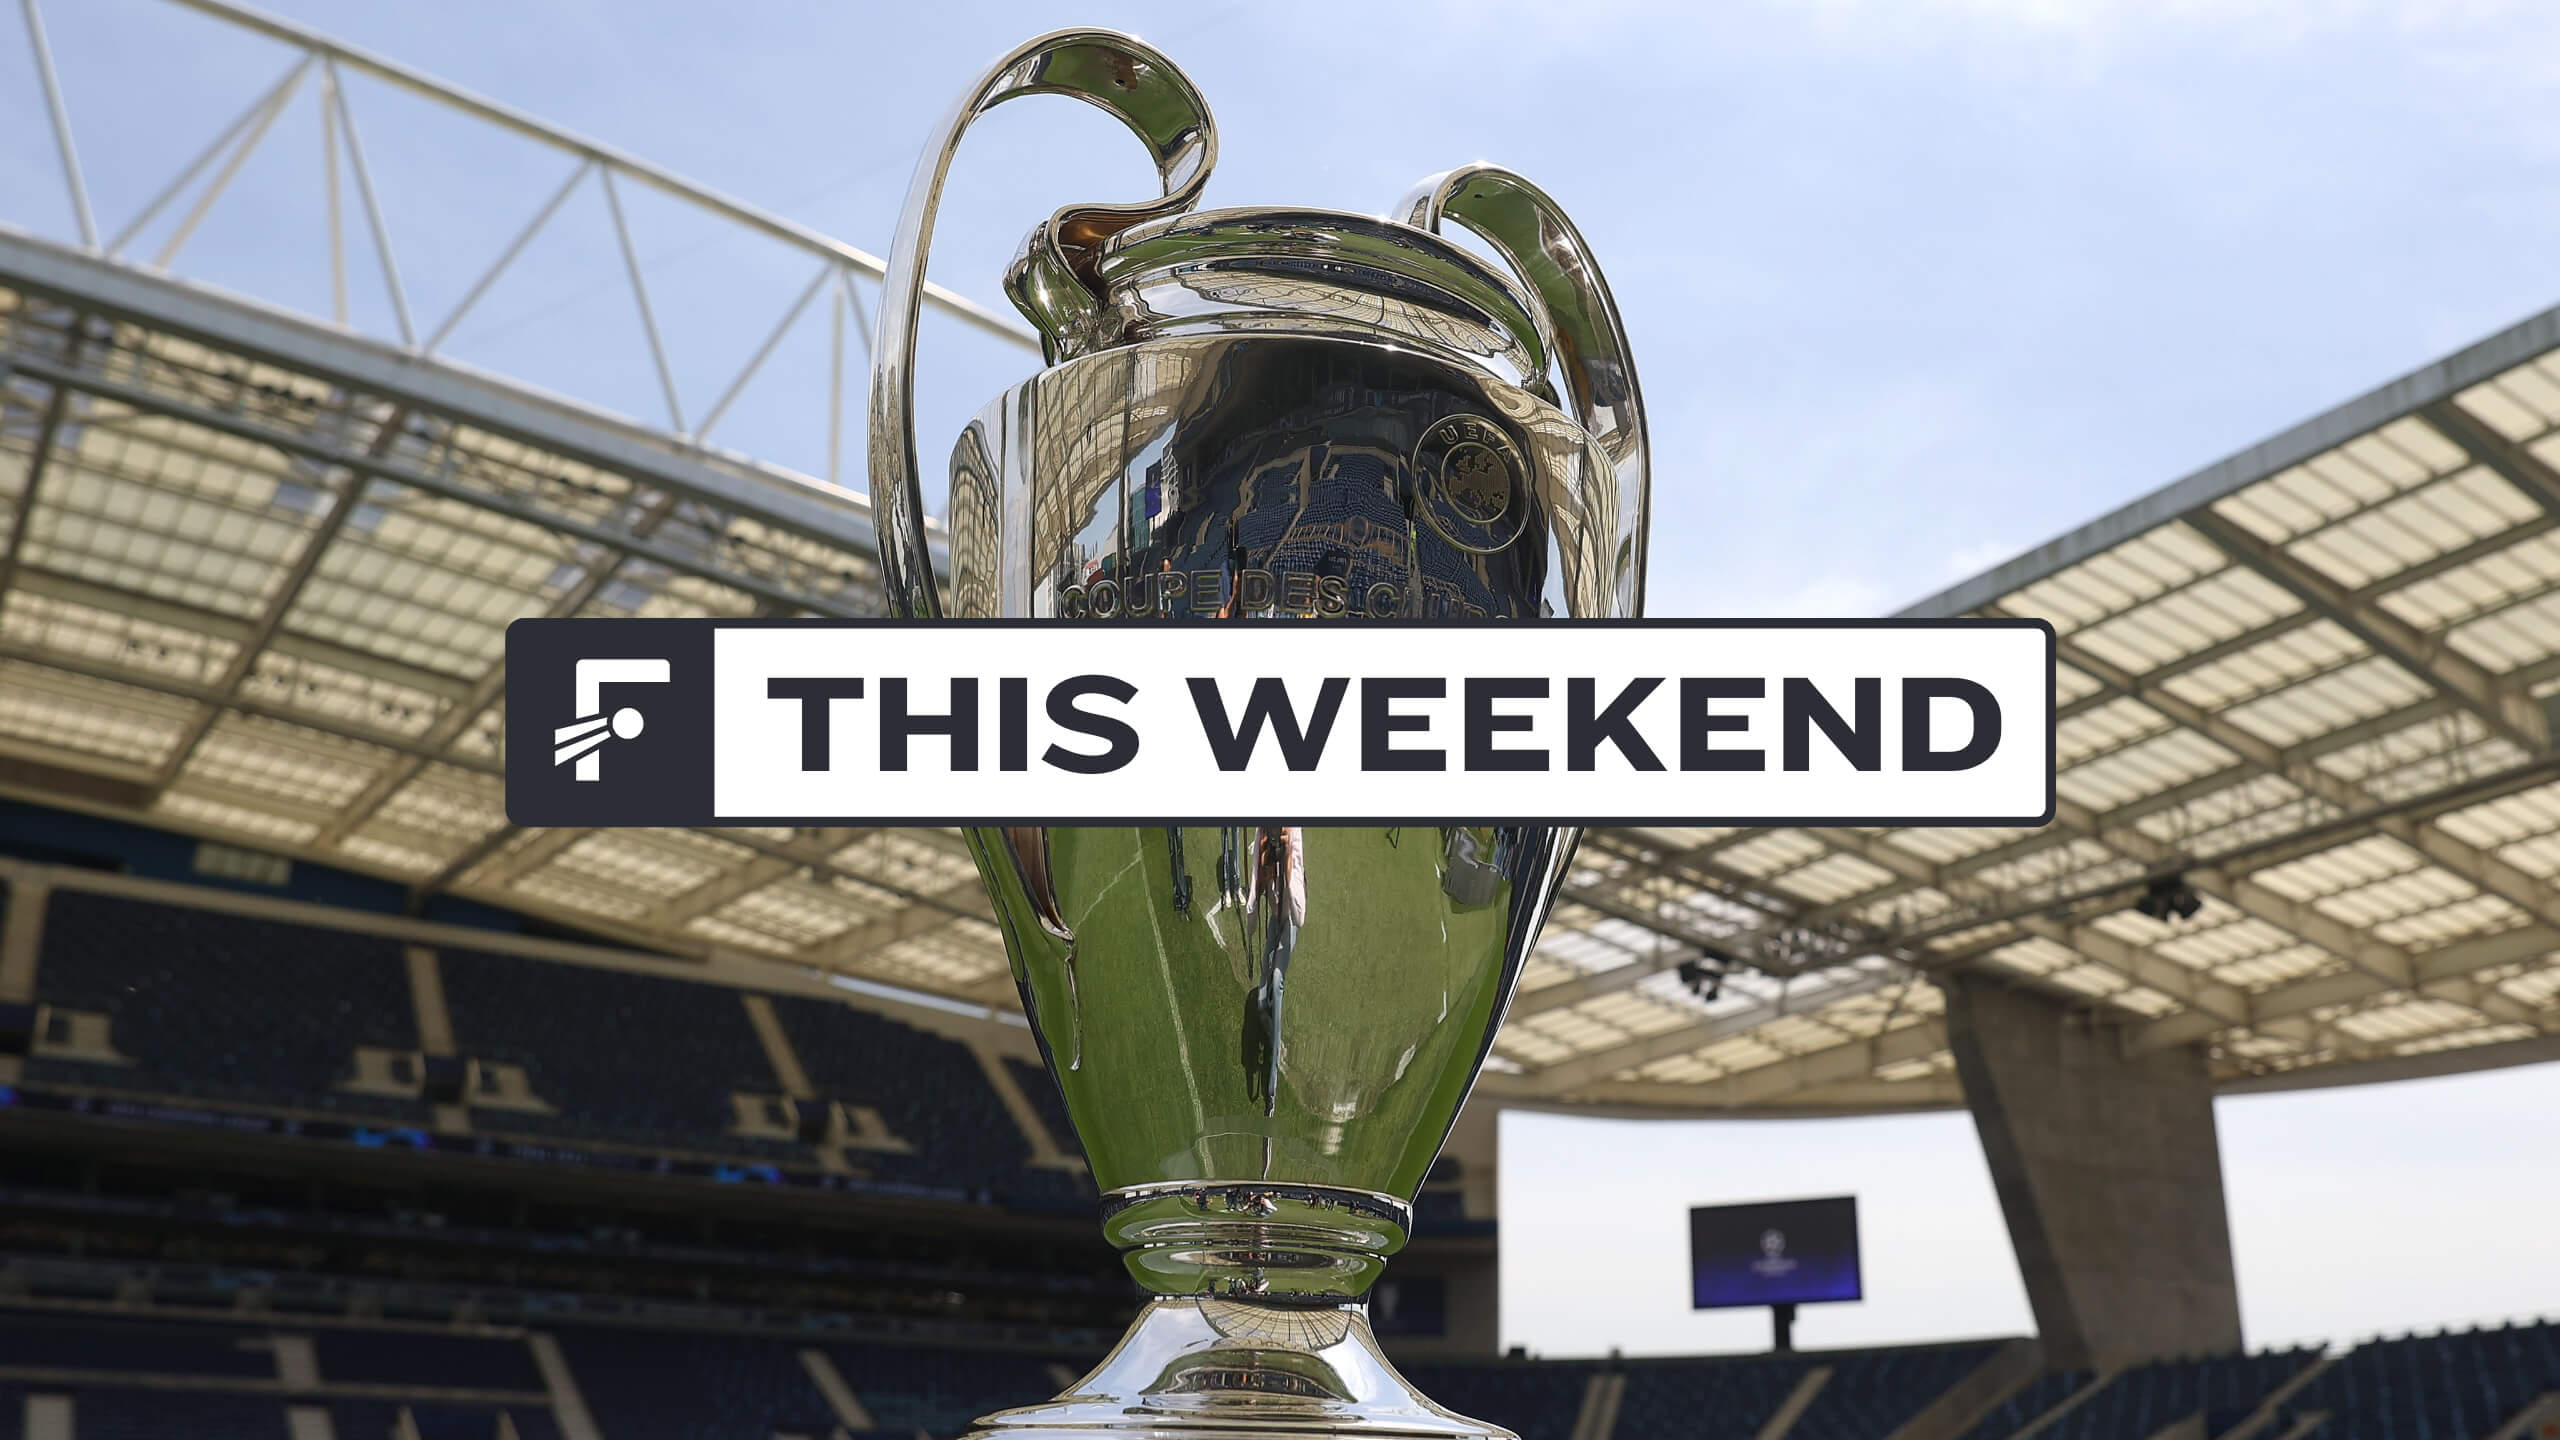 This Weekend: Champions League Final and more!